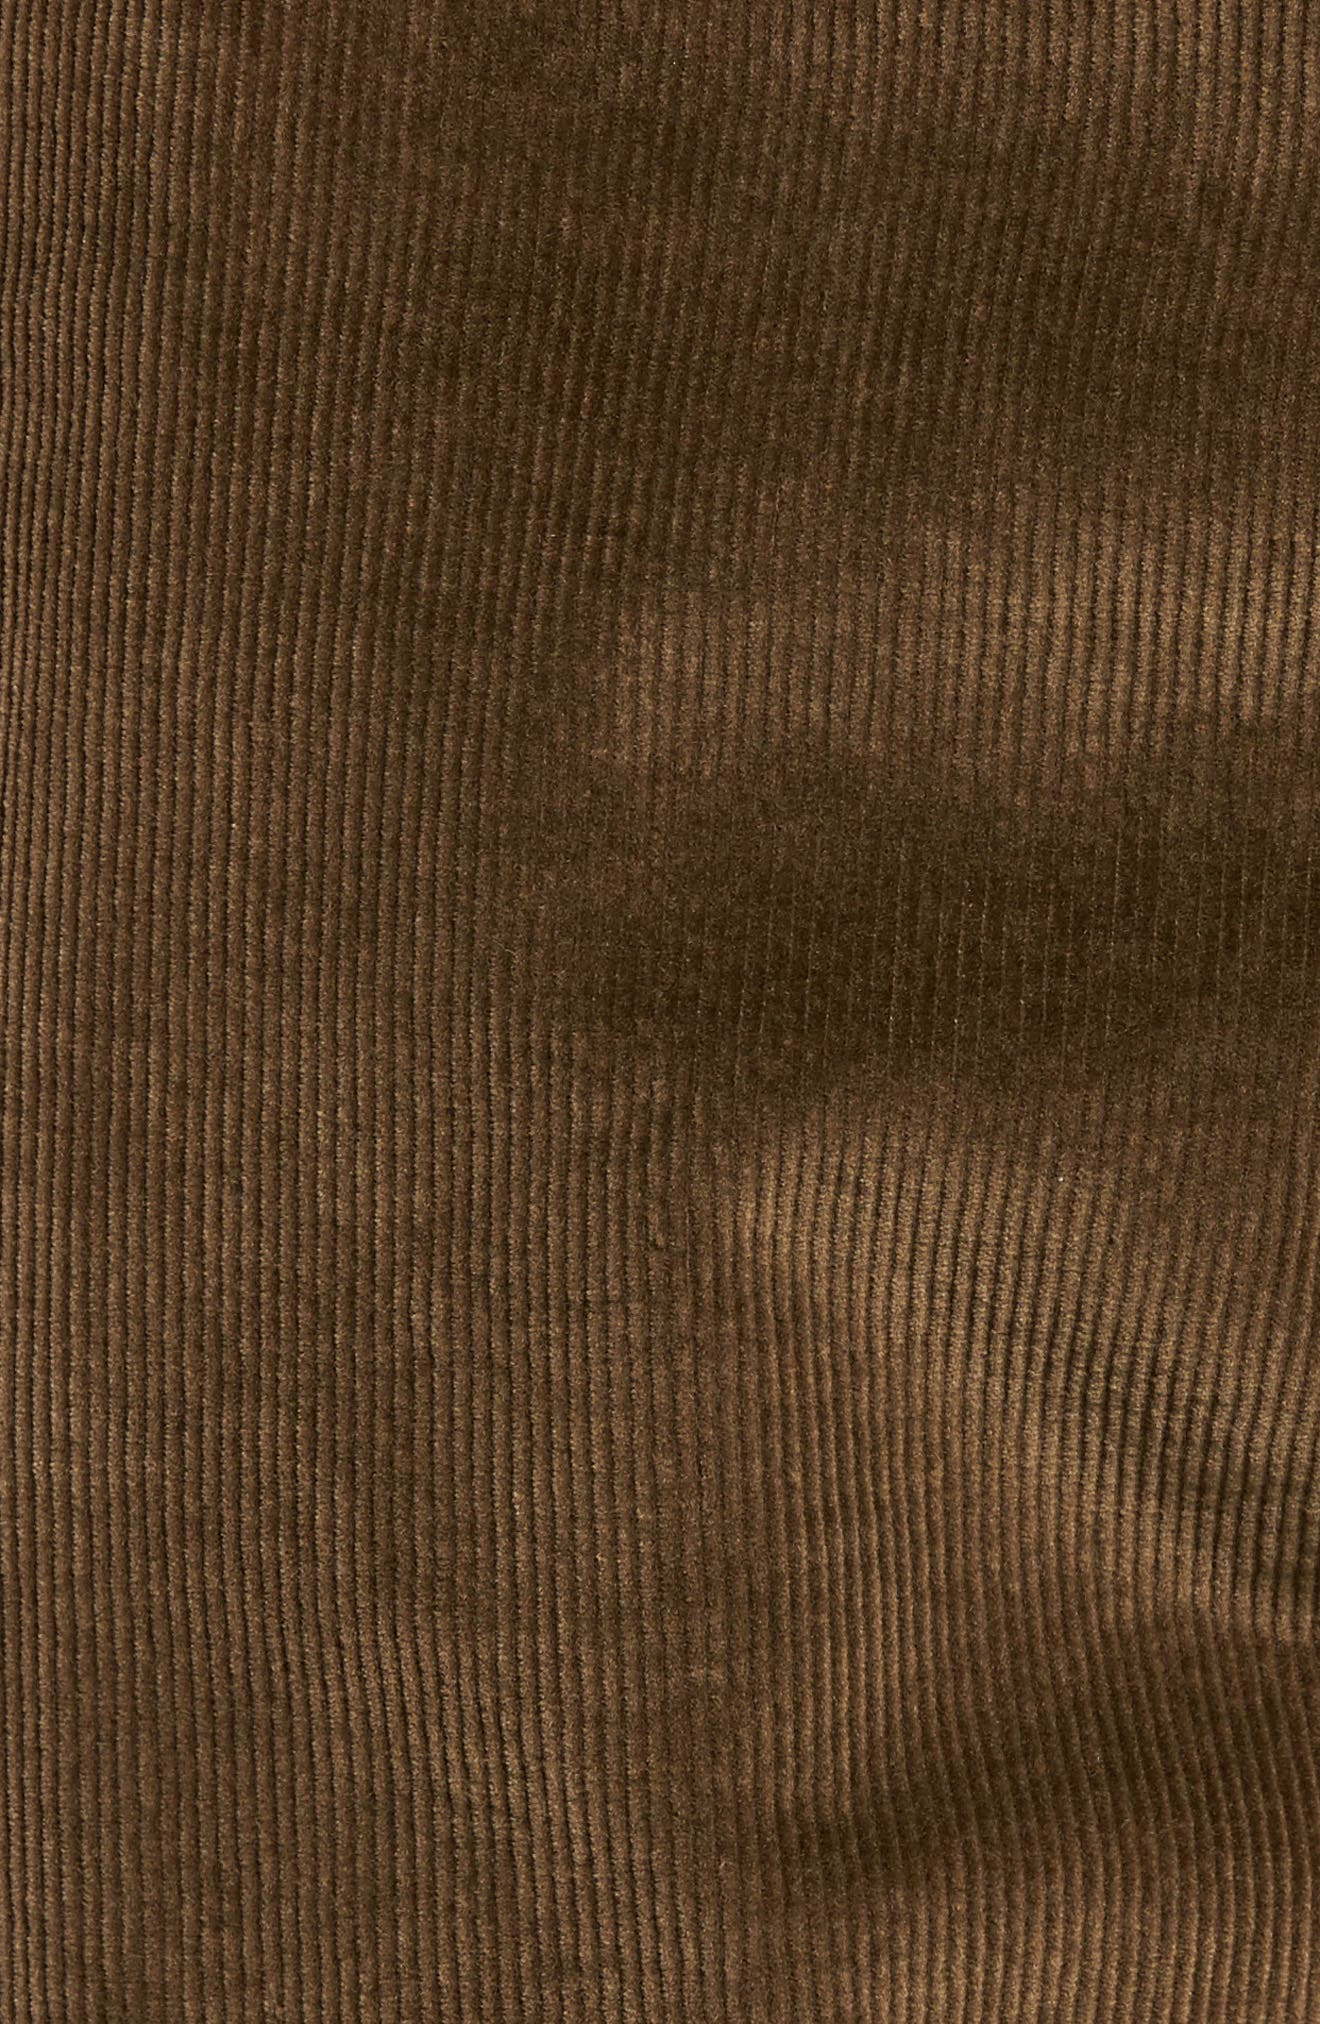 Outsider Corduroy Shorts,                             Alternate thumbnail 5, color,                             Brown